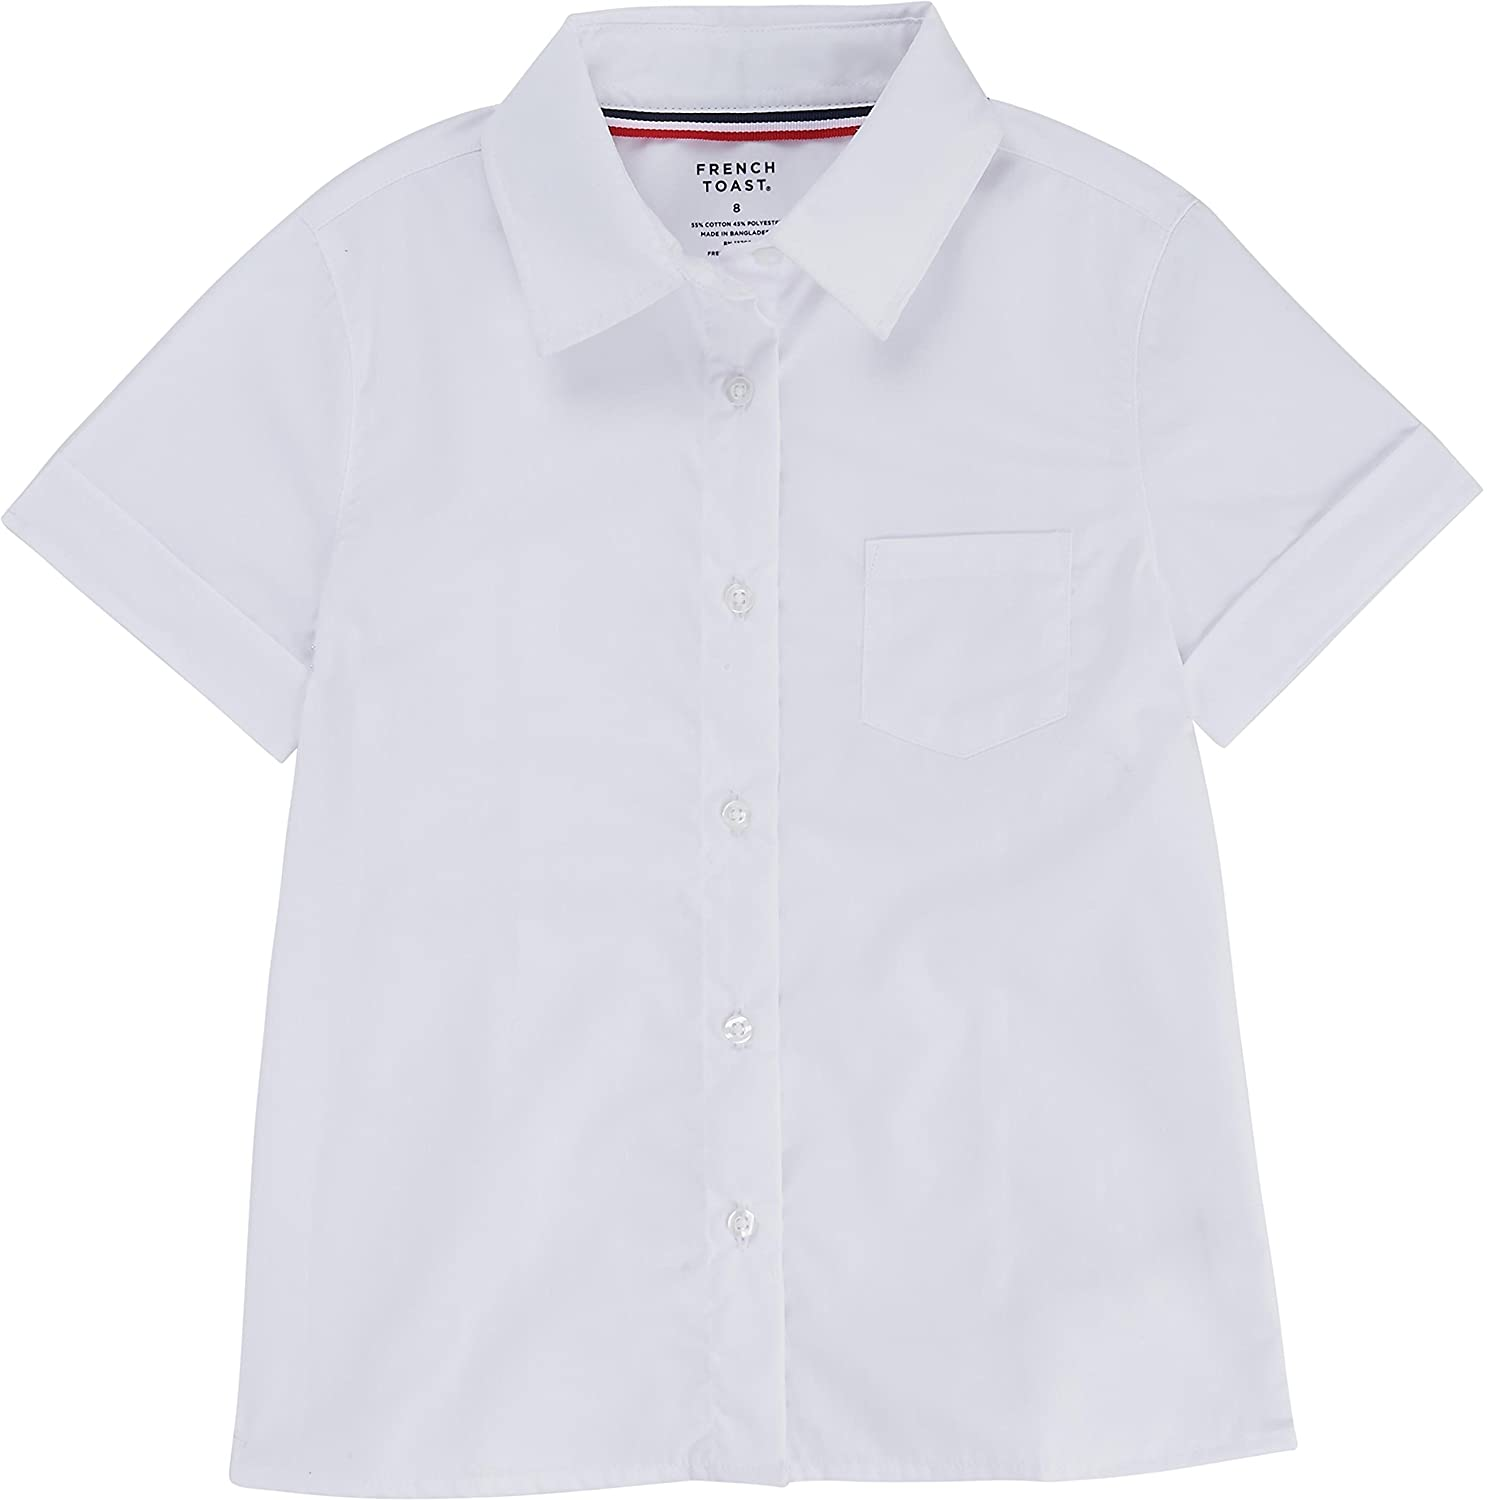 French Toast School Uniform Girls Short Sleeve Pointed Collar Blouse With Pocket